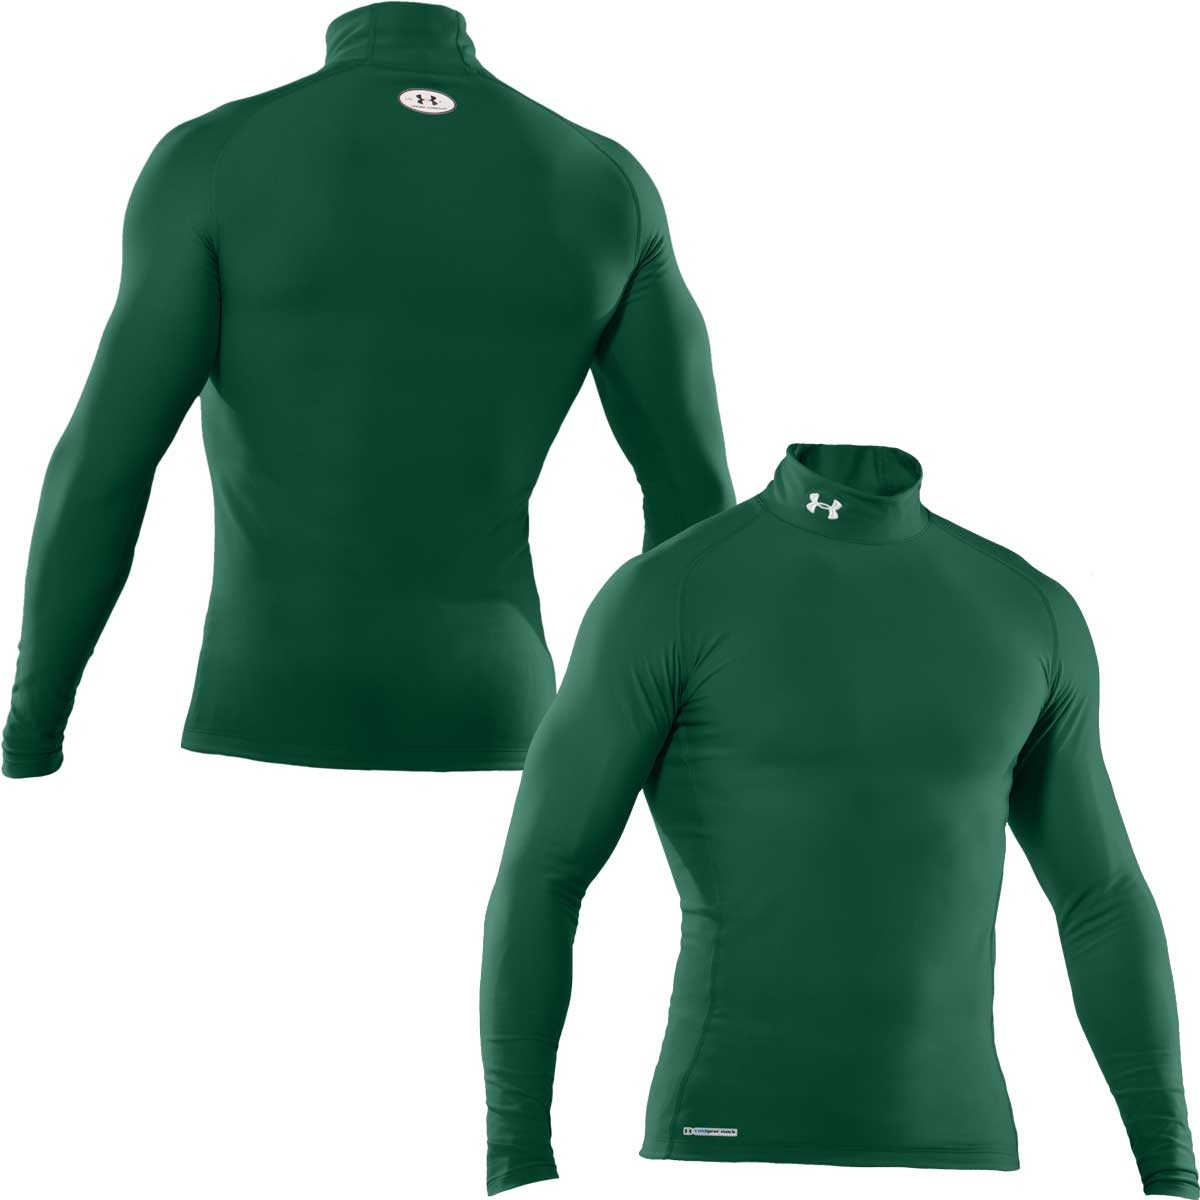 b3905c5ca Image of Under Armour EVO Coldgear Compression Mock - Mens - Forest  Green/White